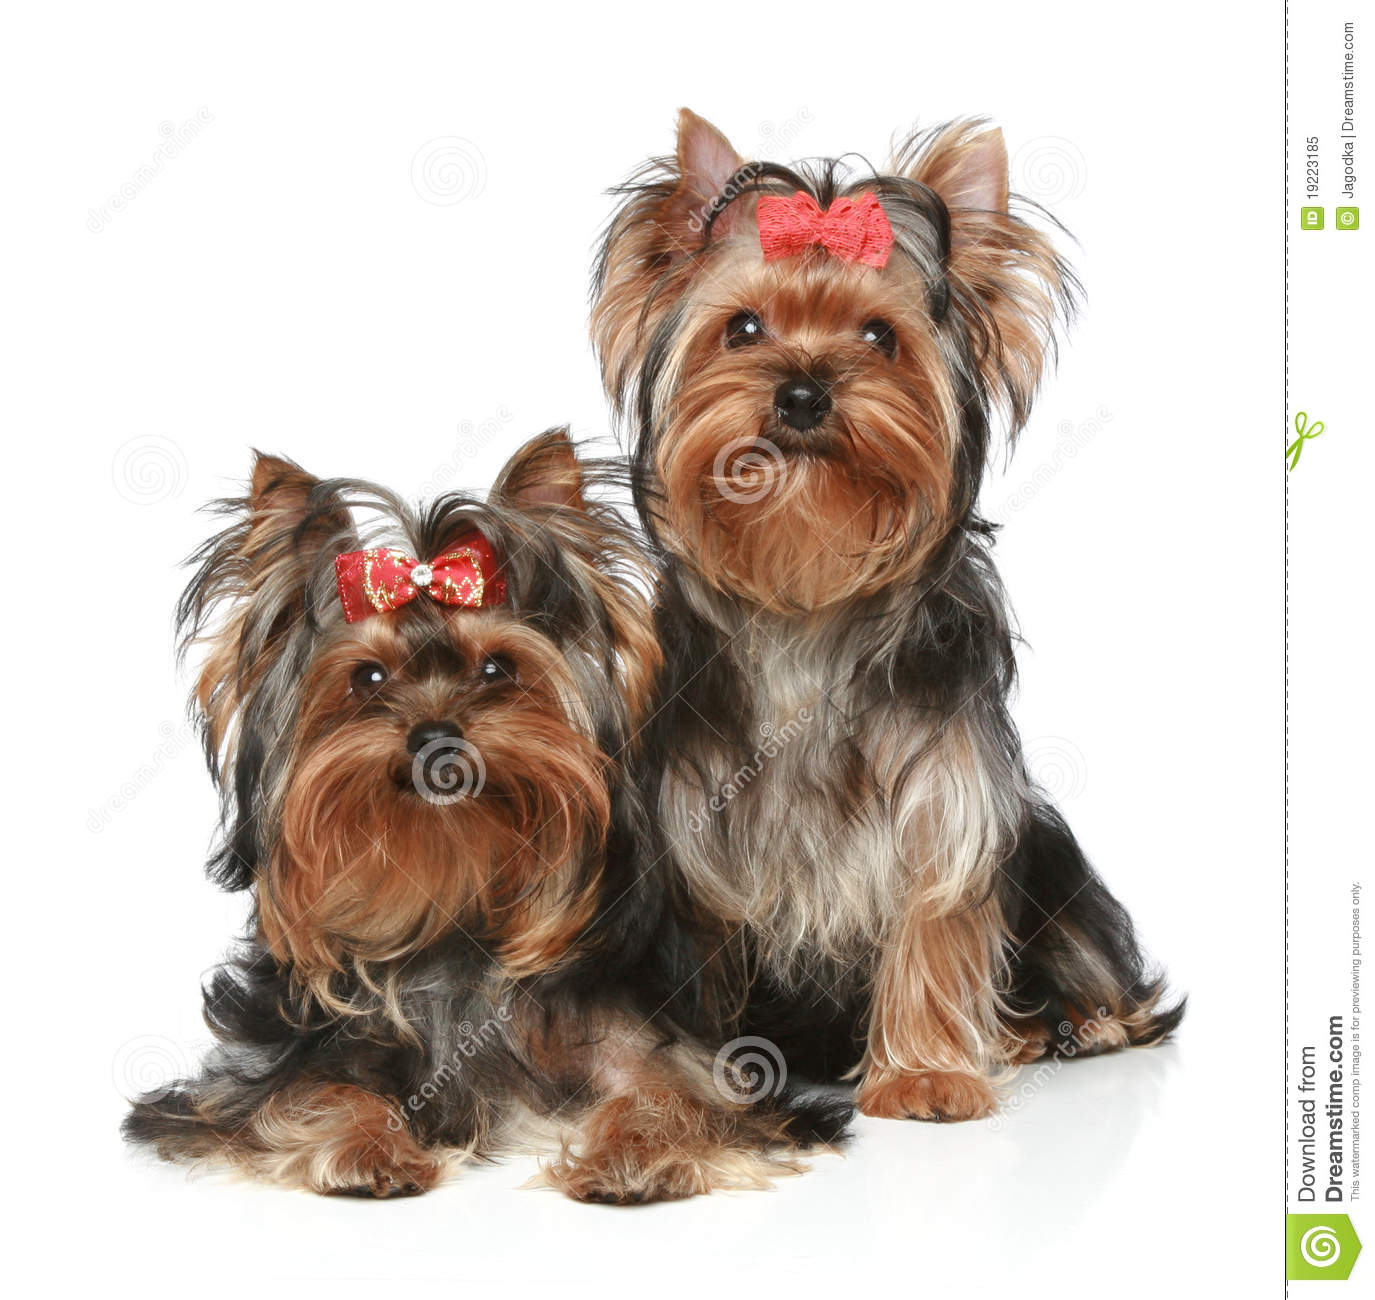 Yorkshire Terrier Puppies On A White Background Royalty Free Stock ...